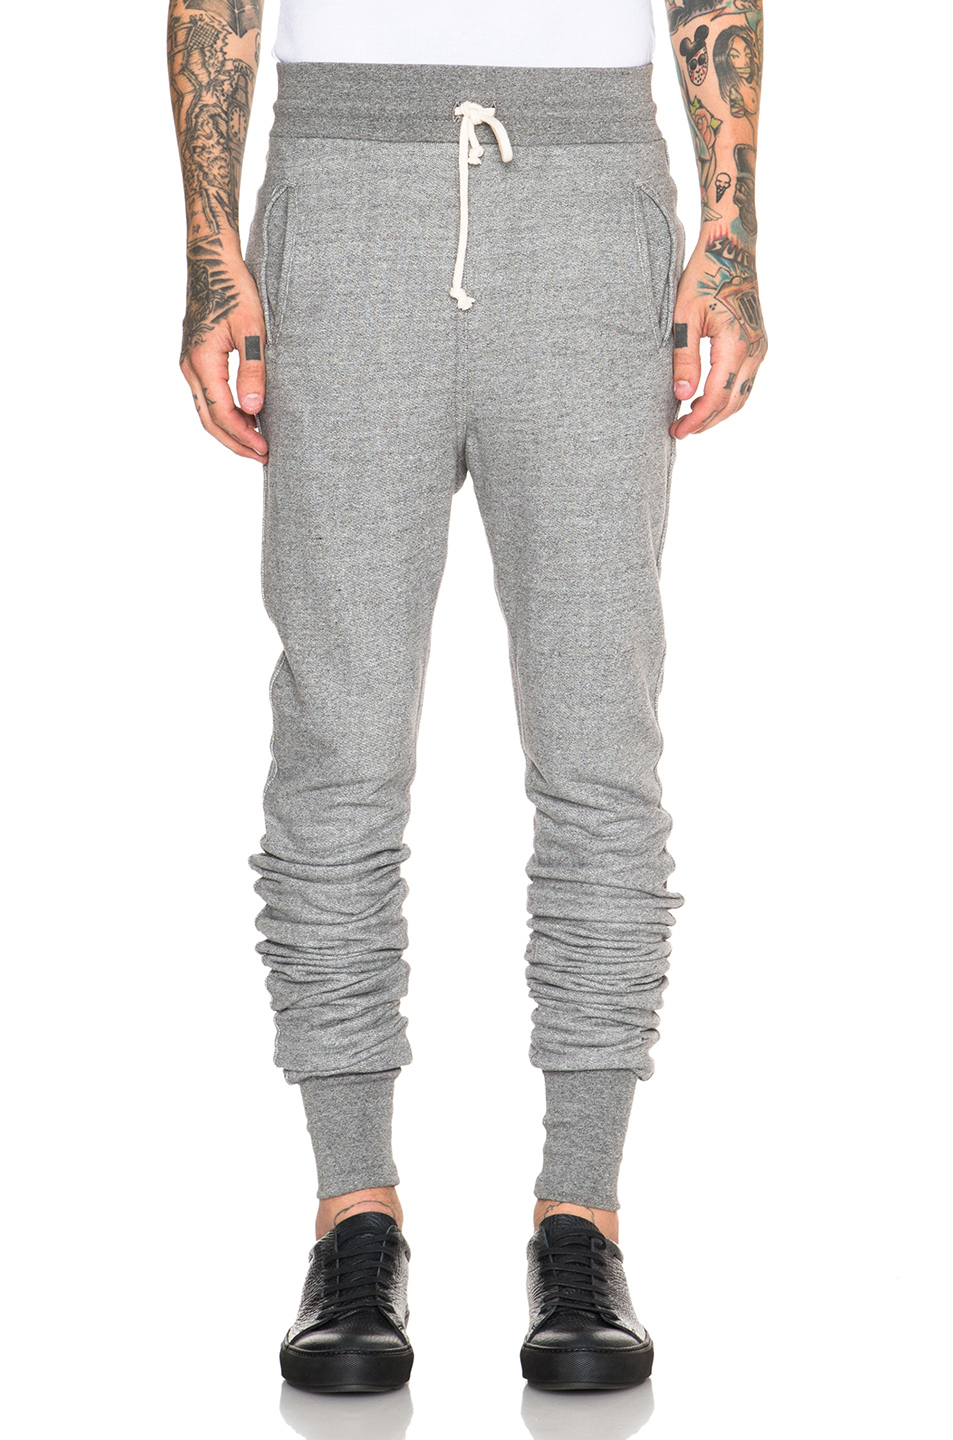 JOHN ELLIOTT Kito Cotton Sweatpants in Gray